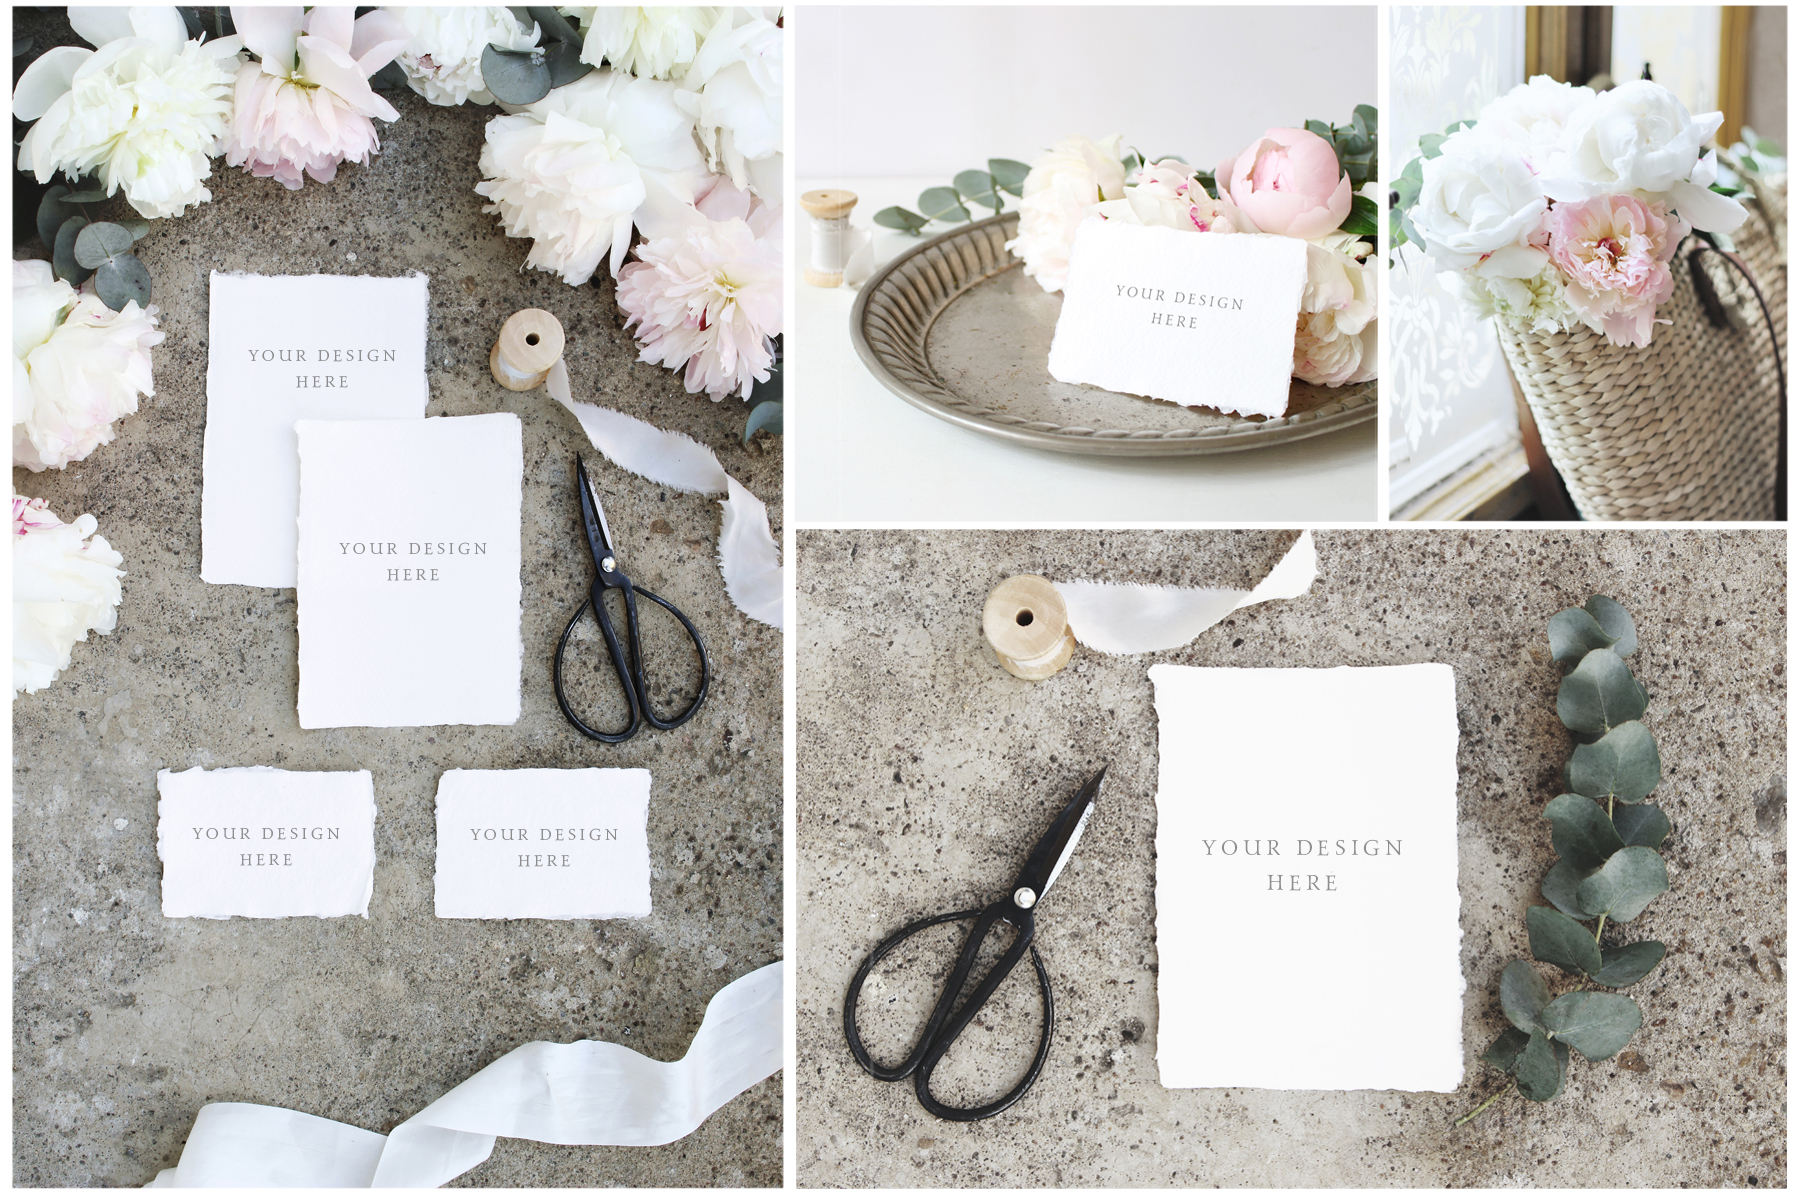 Vintage peony wedding mockups & stock photo bundle example image 5